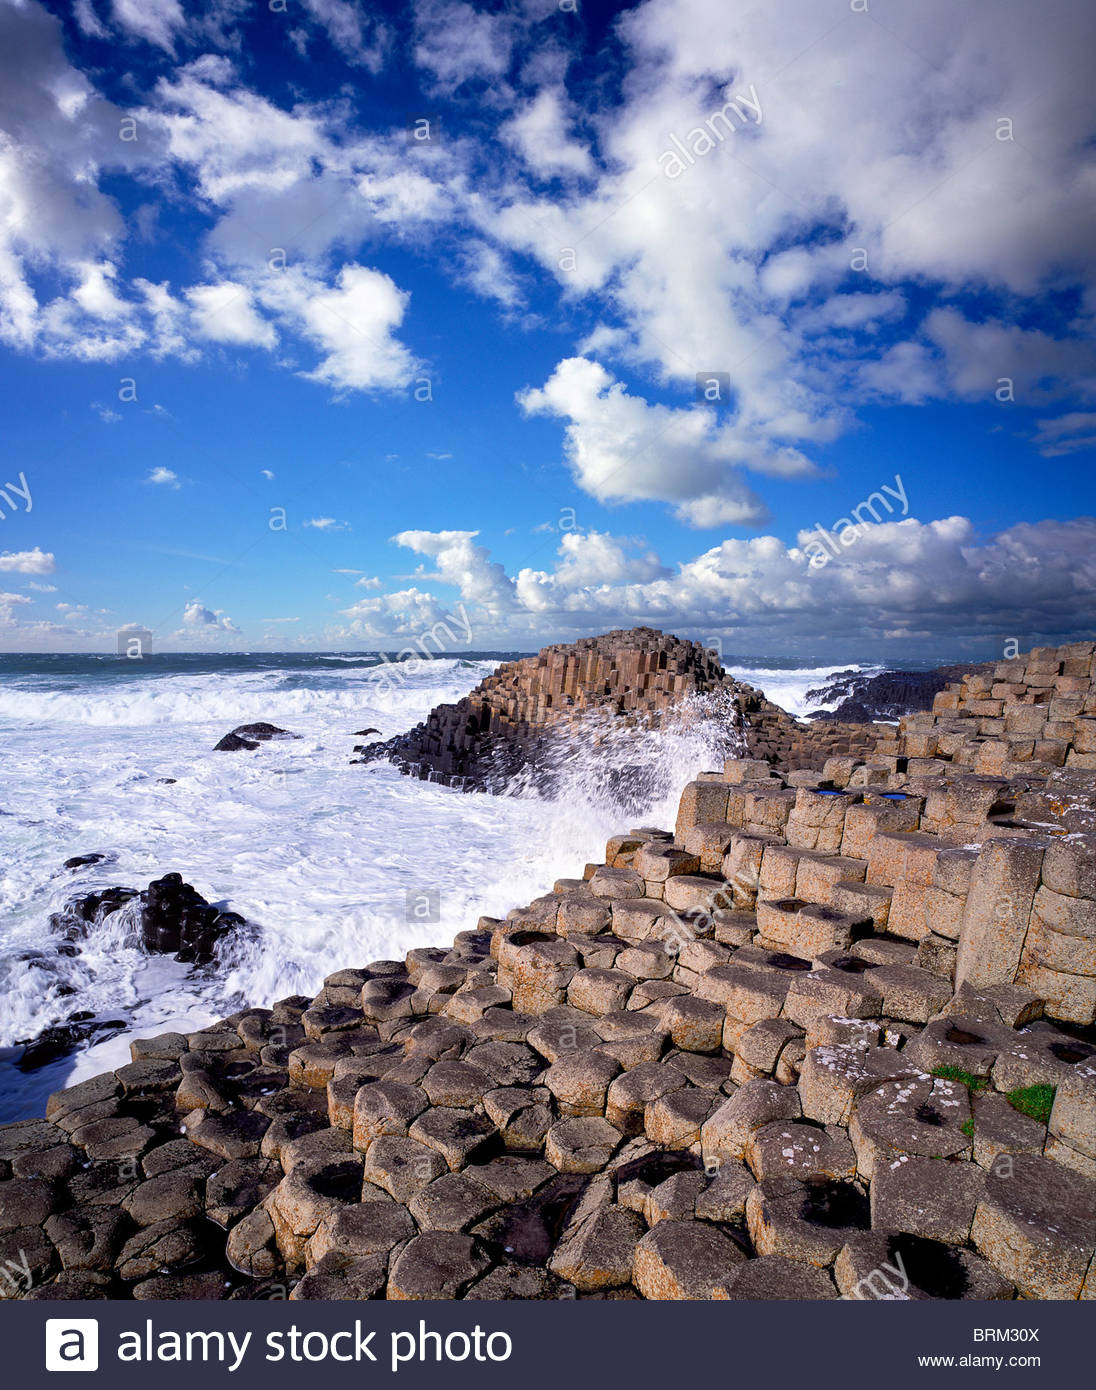 Hexagonal rock formations of the Giant's Causeway in Northern Ireland. - Stock Image